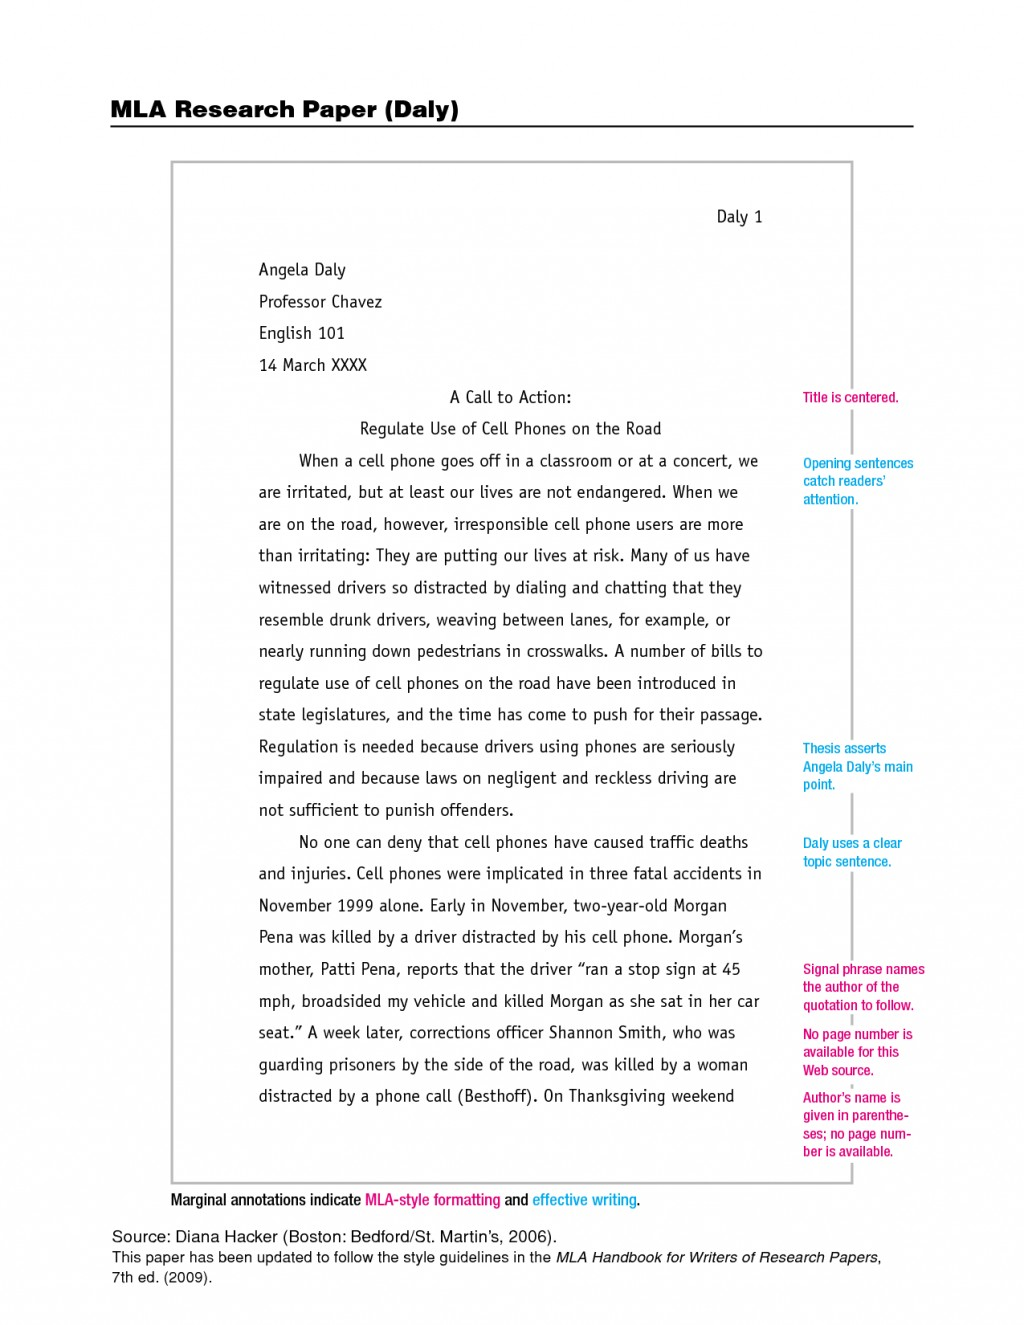 002 Research Paper Format Stunning Apa Writing Style Sample 2010 Large